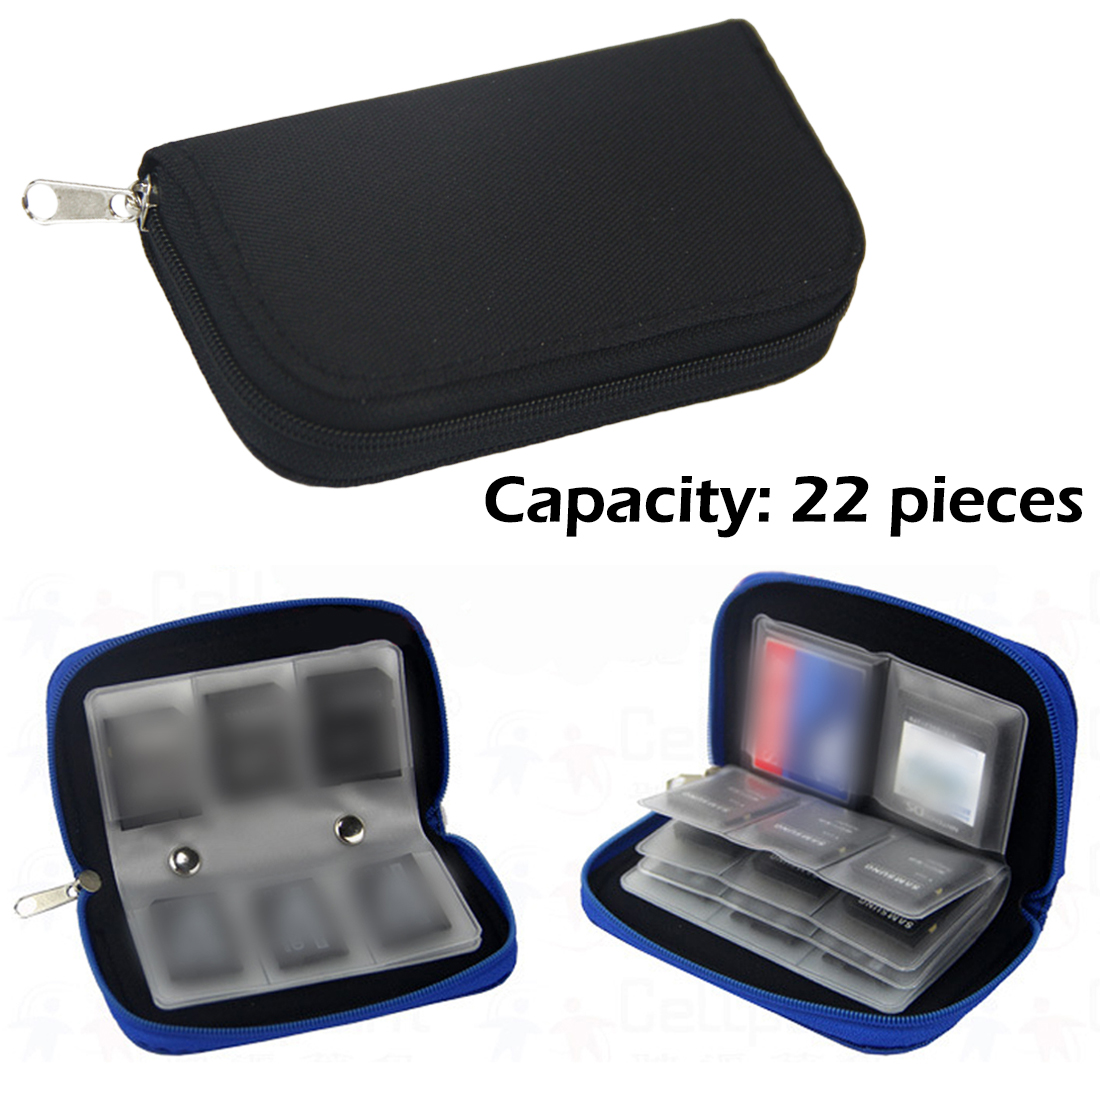 Black Nylon SD SDHC MMC CF For Micro SD Memory Card Storage Carrying Pouch Bag Box Case Holder Protector Wallet